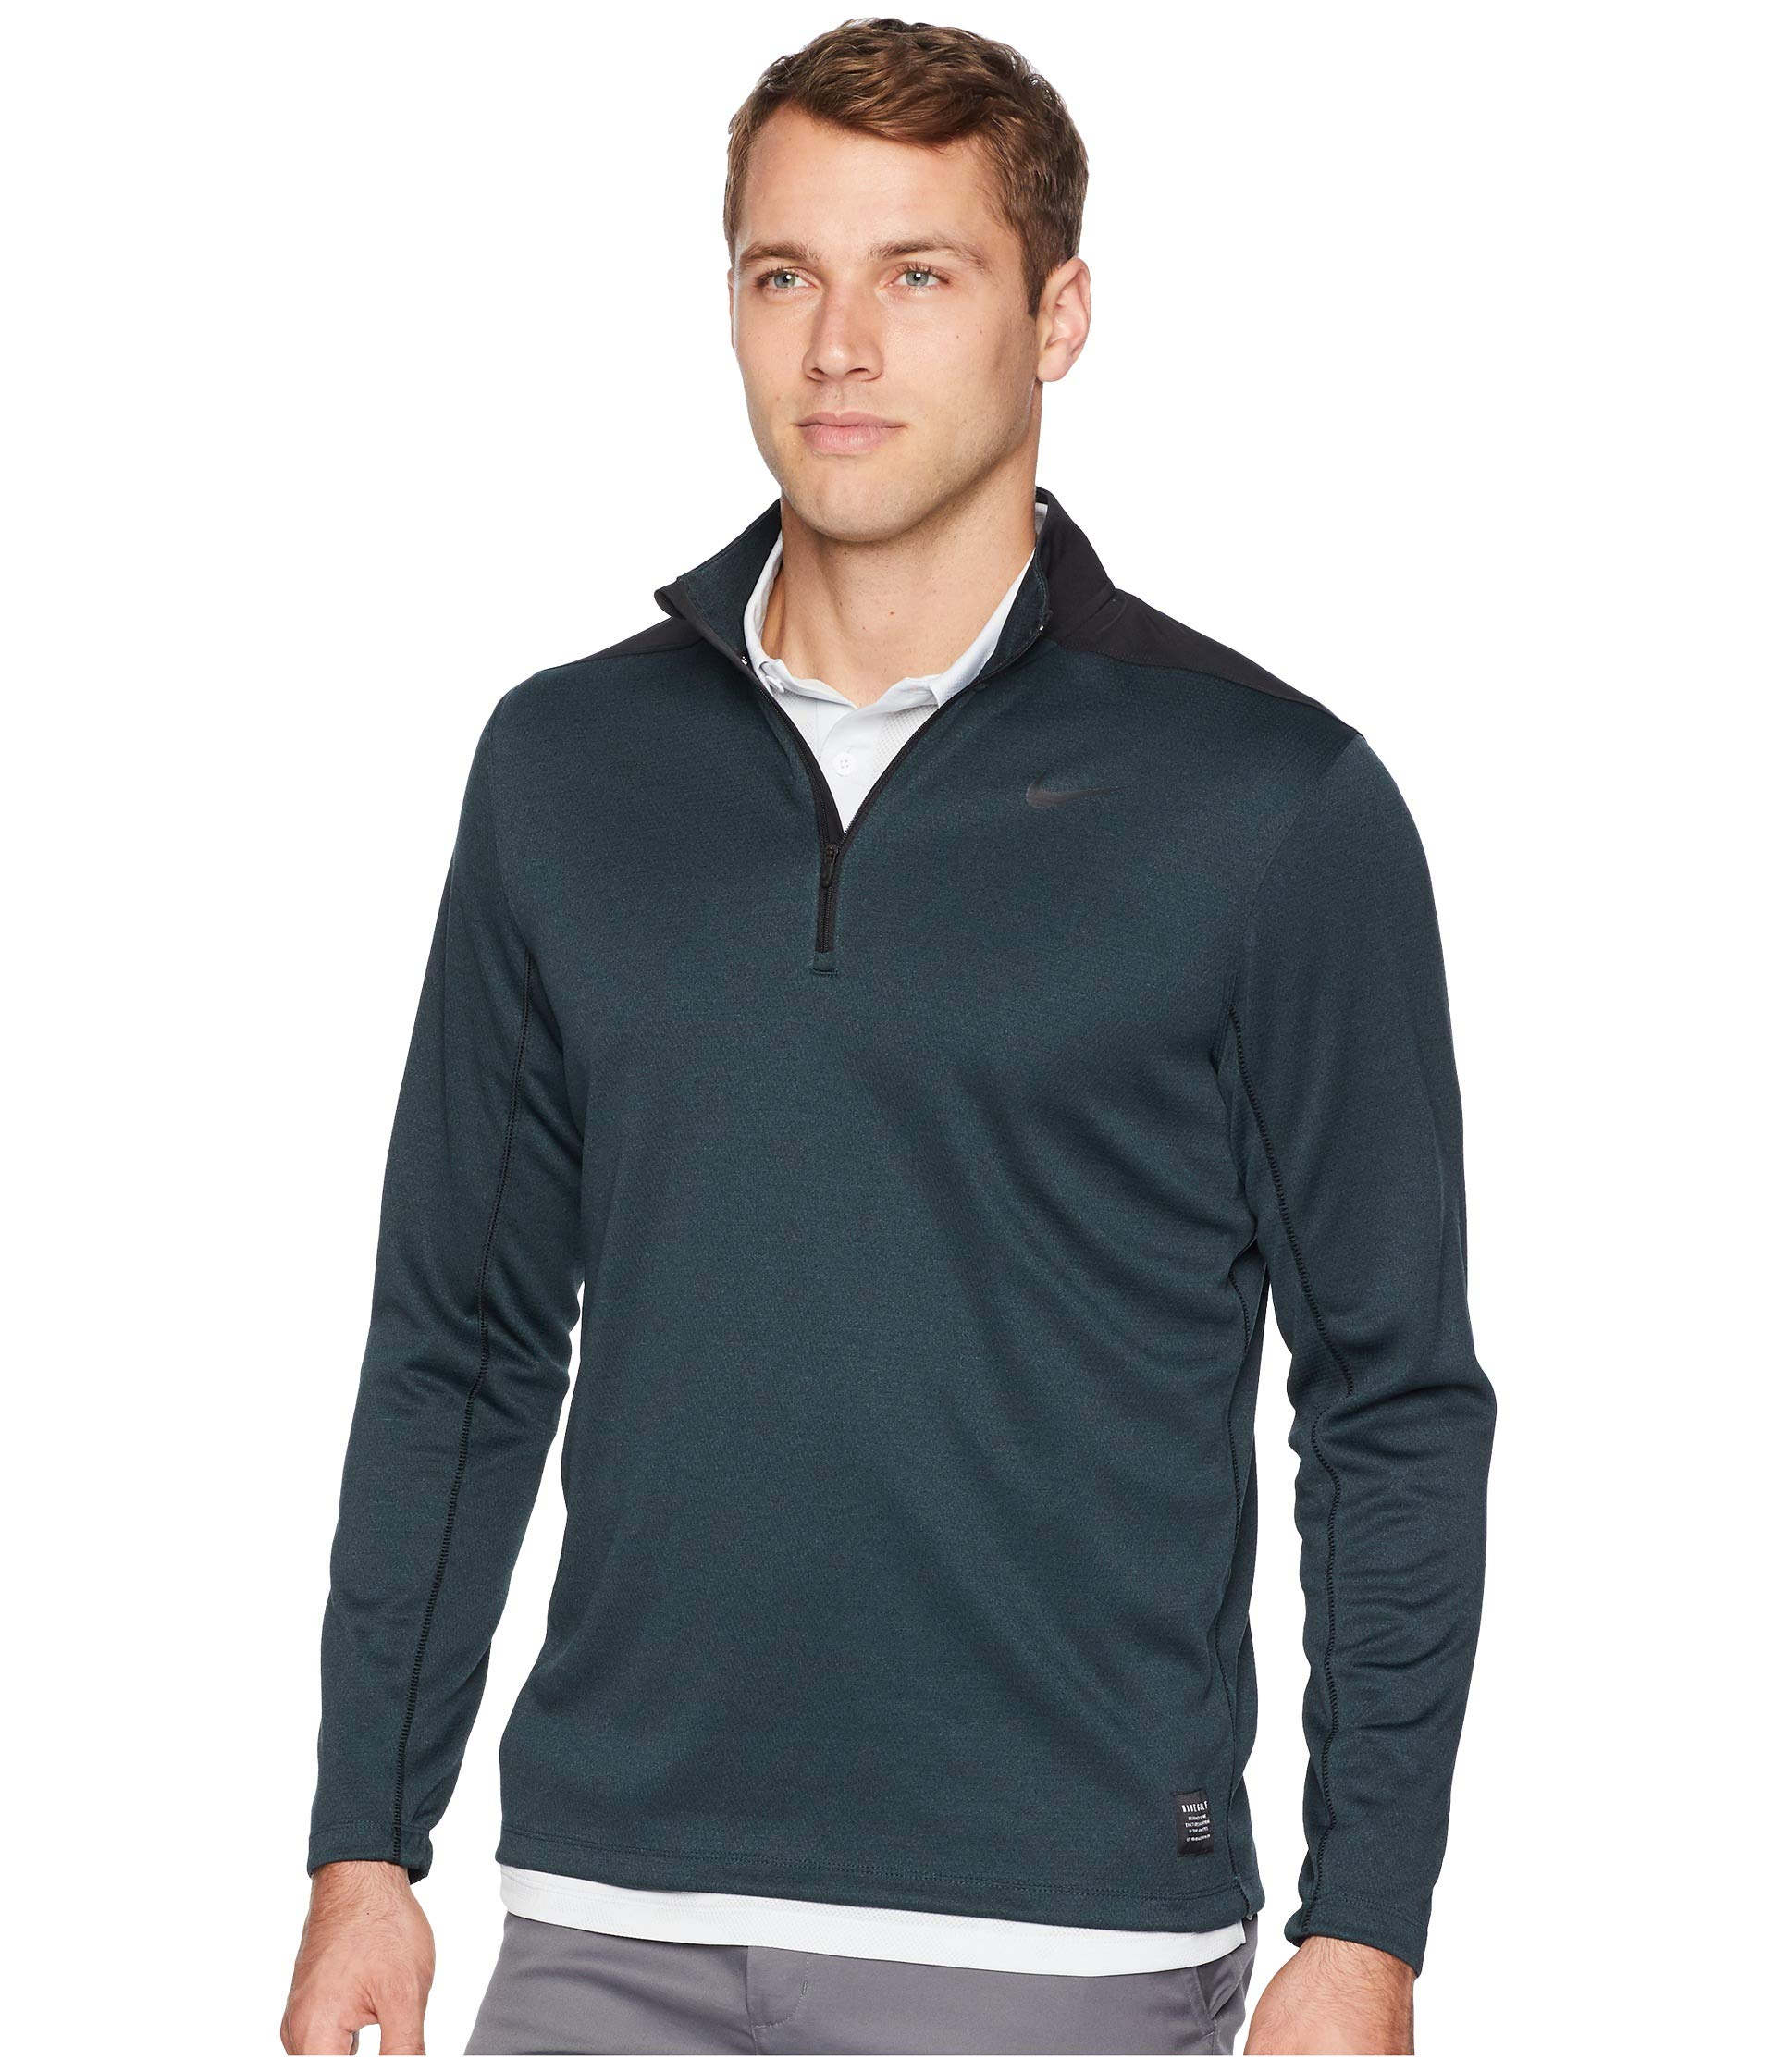 Nike Men's Dry Top Half Zip core Golf Top (Black Midnight Spruce, Small) by Nike